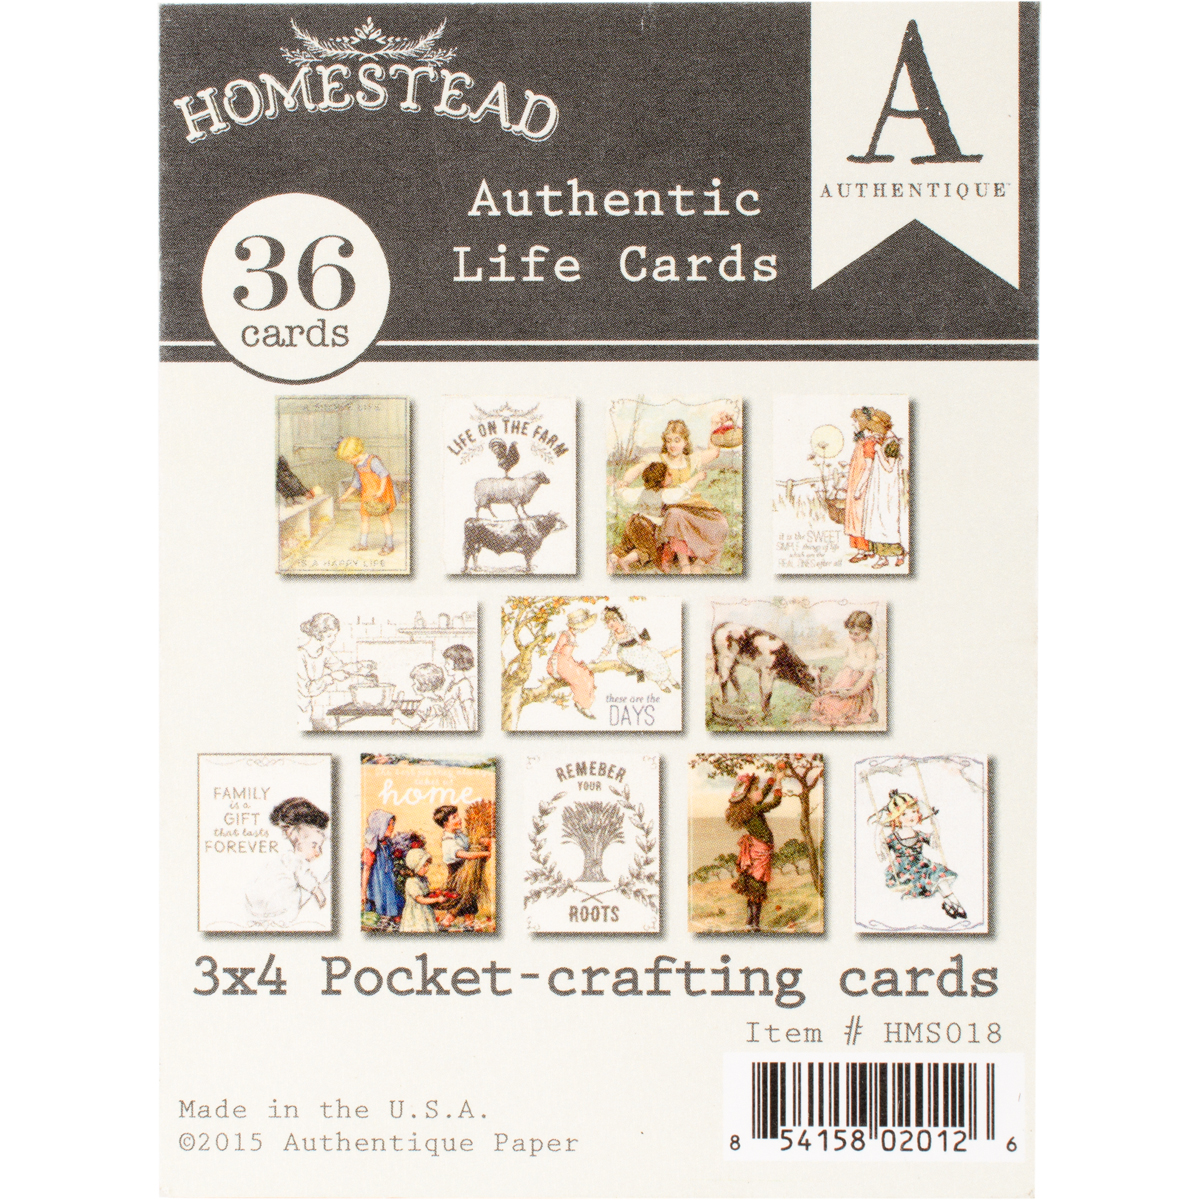 "Homestead Authentic Life Cards, Pocket Crafting & Journaling, 3"" x 4"" Cards"